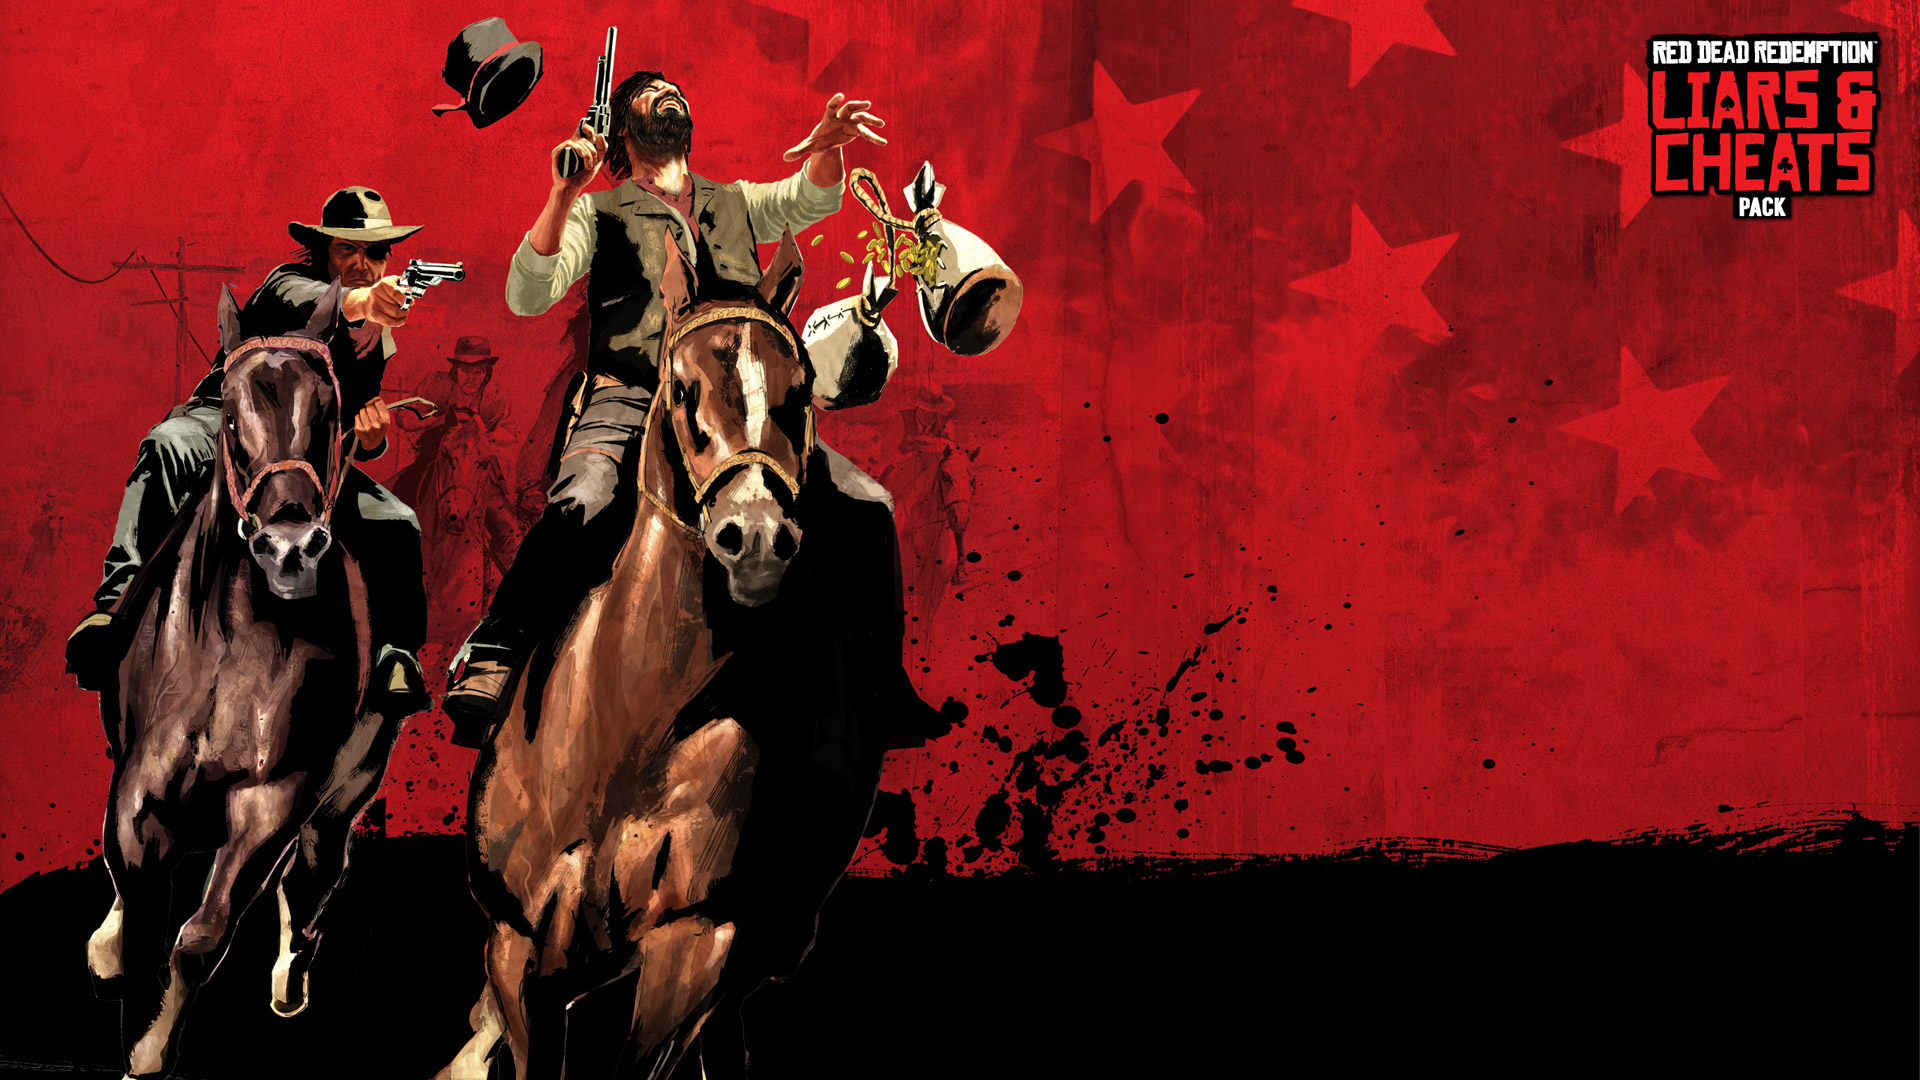 Free Red Dead Redemption Wallpaper in 1920x1080